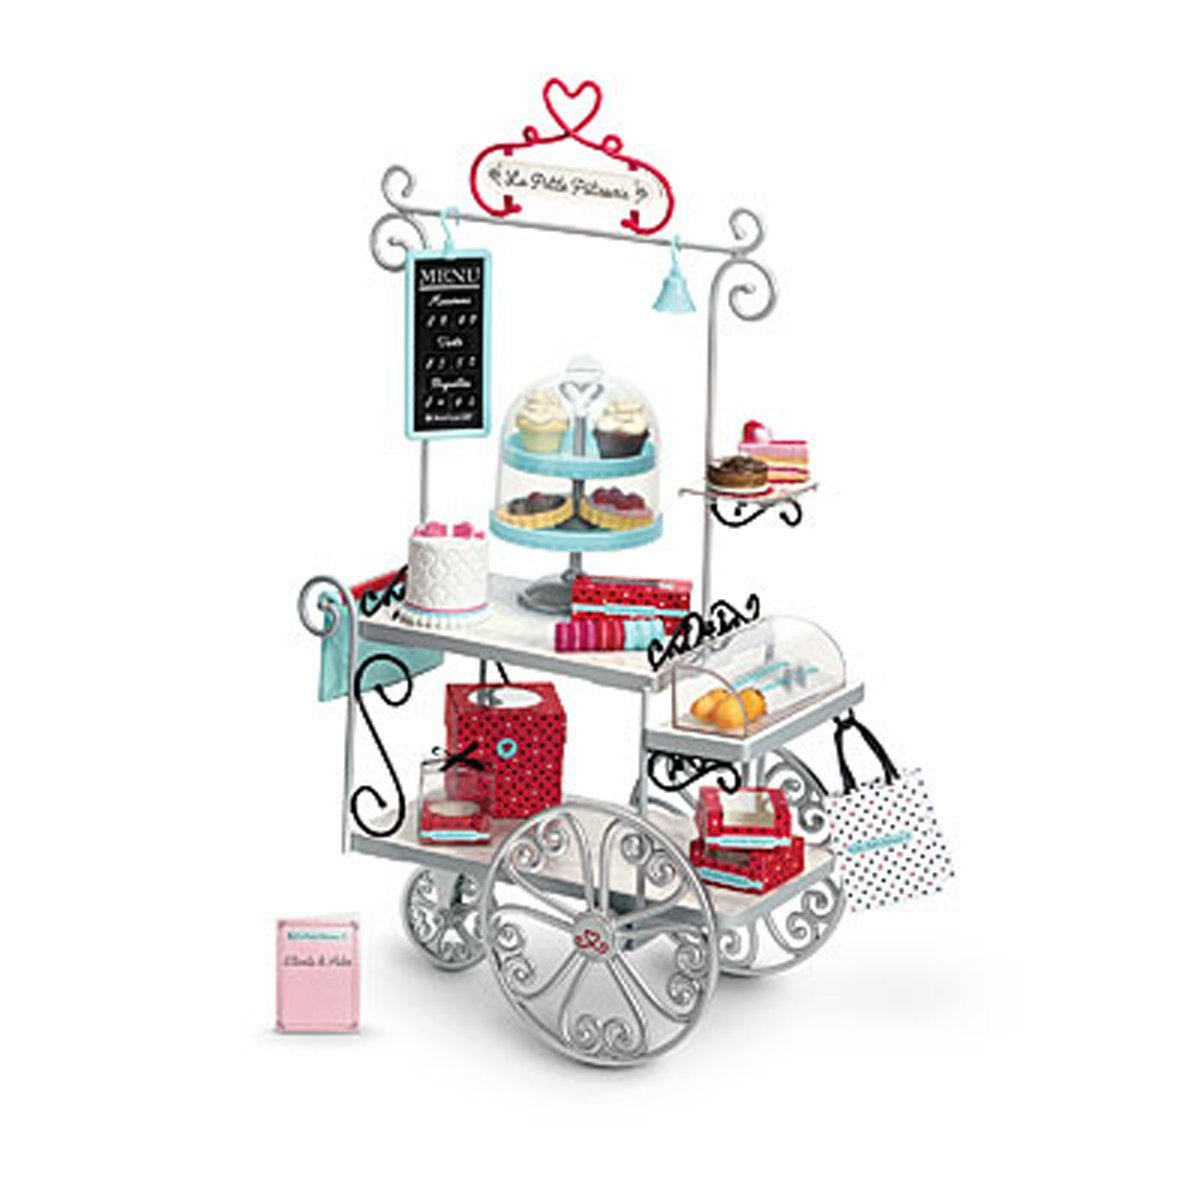 American Girl Grace - Grace's Pastry Cart for Dolls - American Girl of 2015